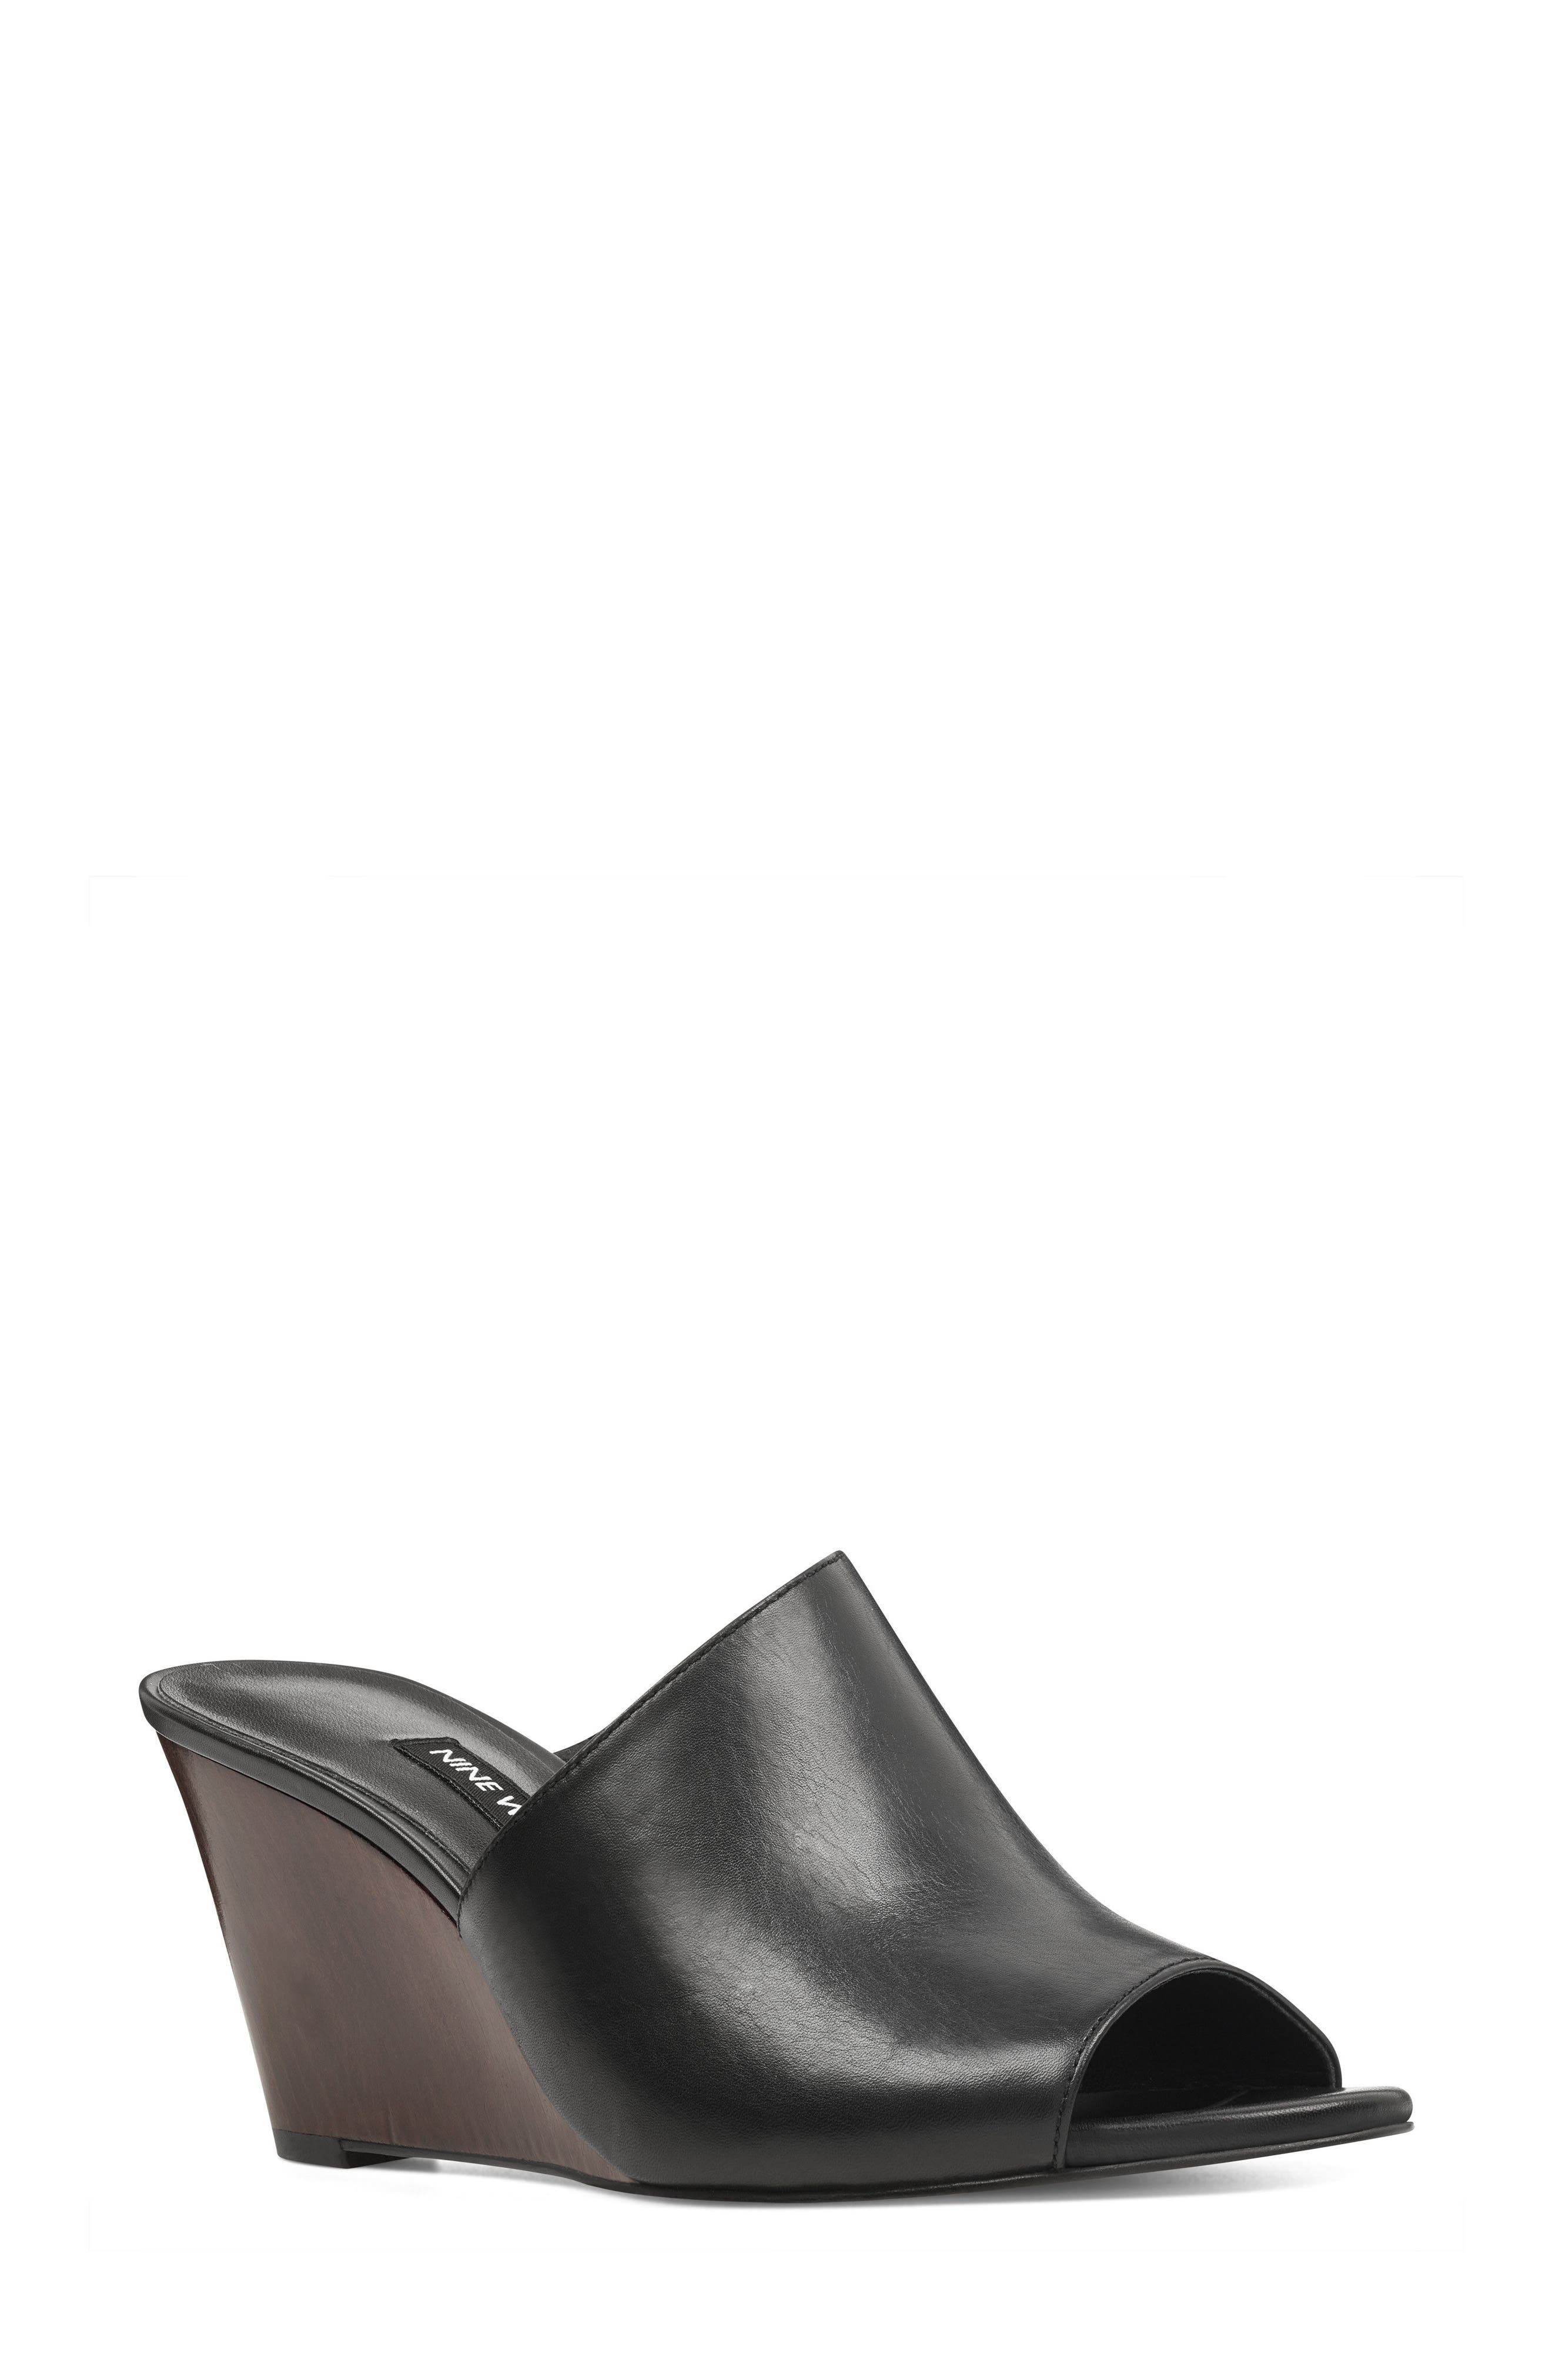 Janissah Wedge,                         Main,                         color, Black Leather